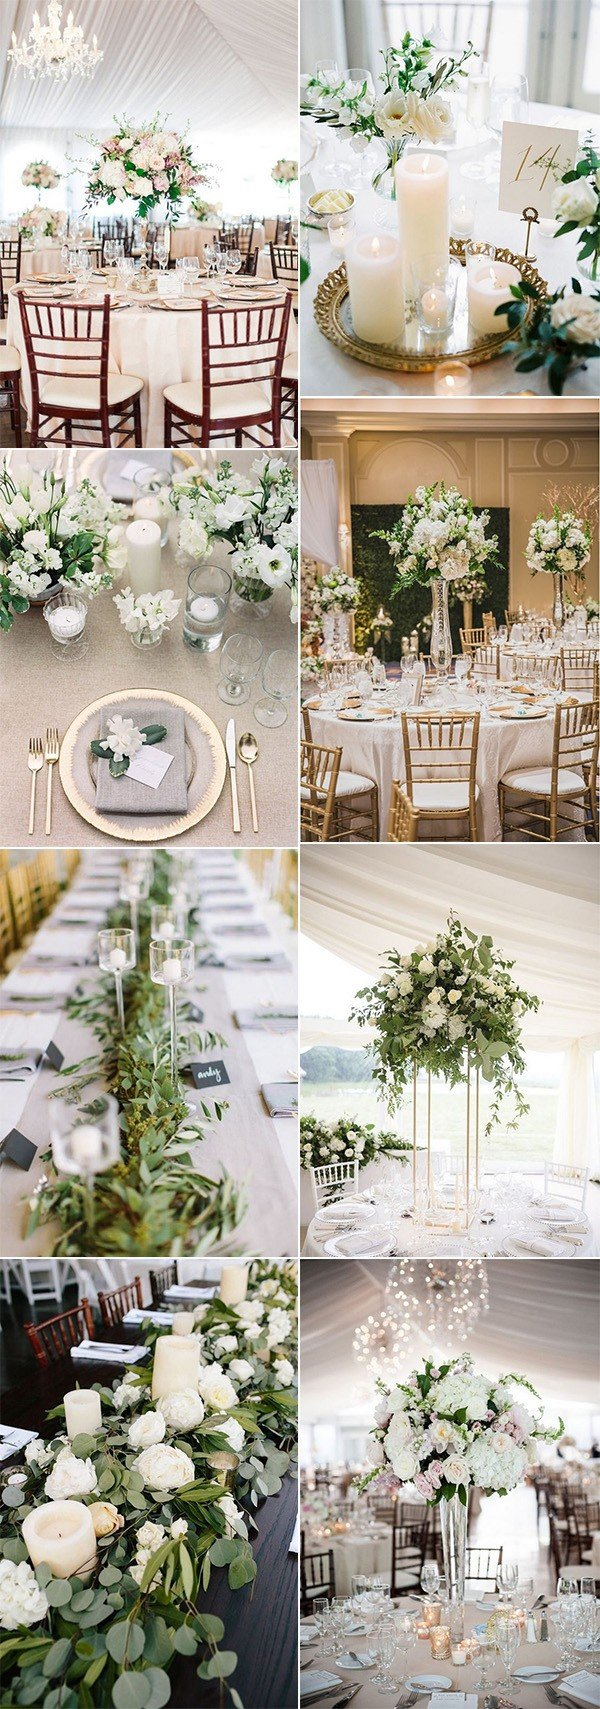 Wedding trends 2018 archives oh best day ever trending elegant wedding centerpieces for 2018 junglespirit Image collections